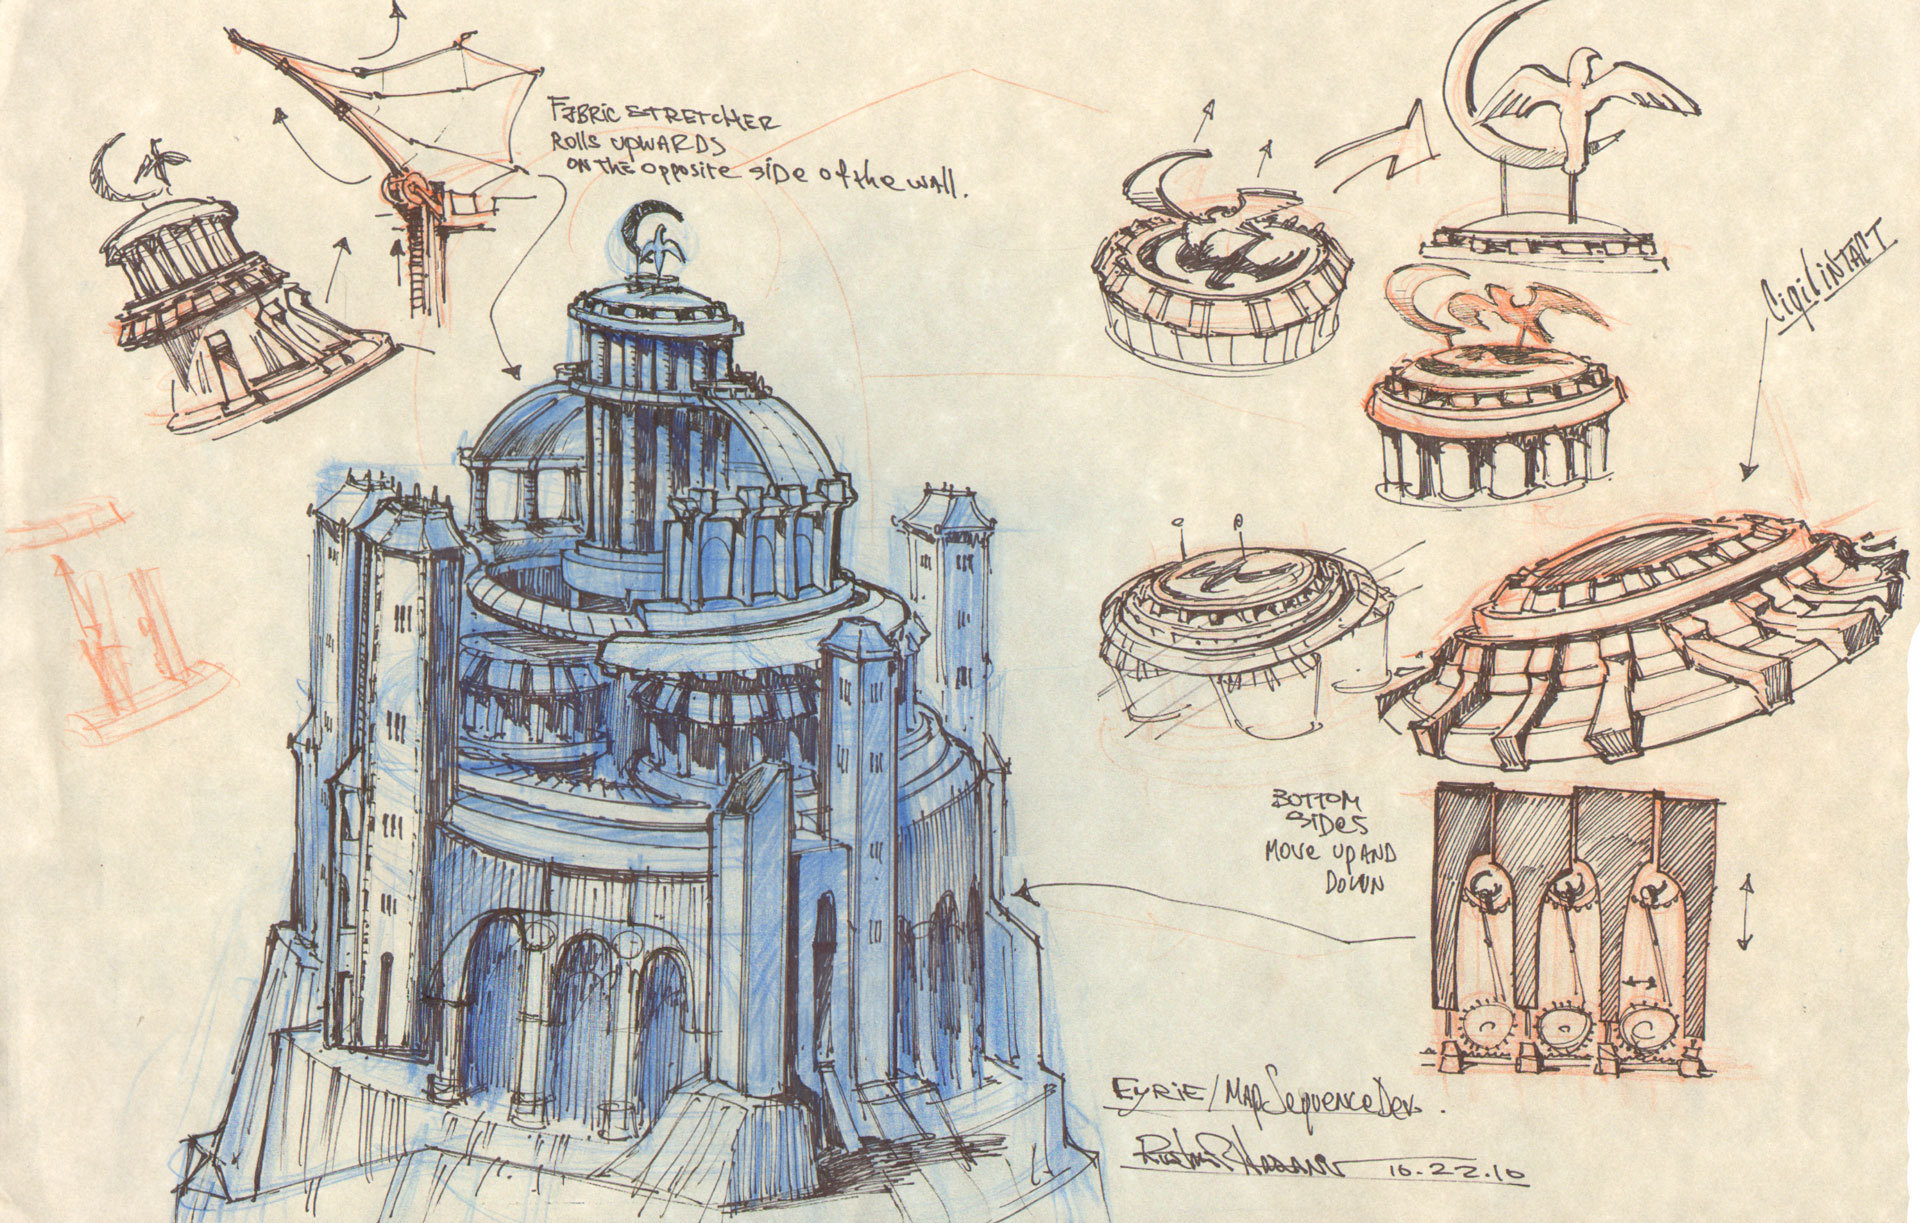 The Eyrie sketches